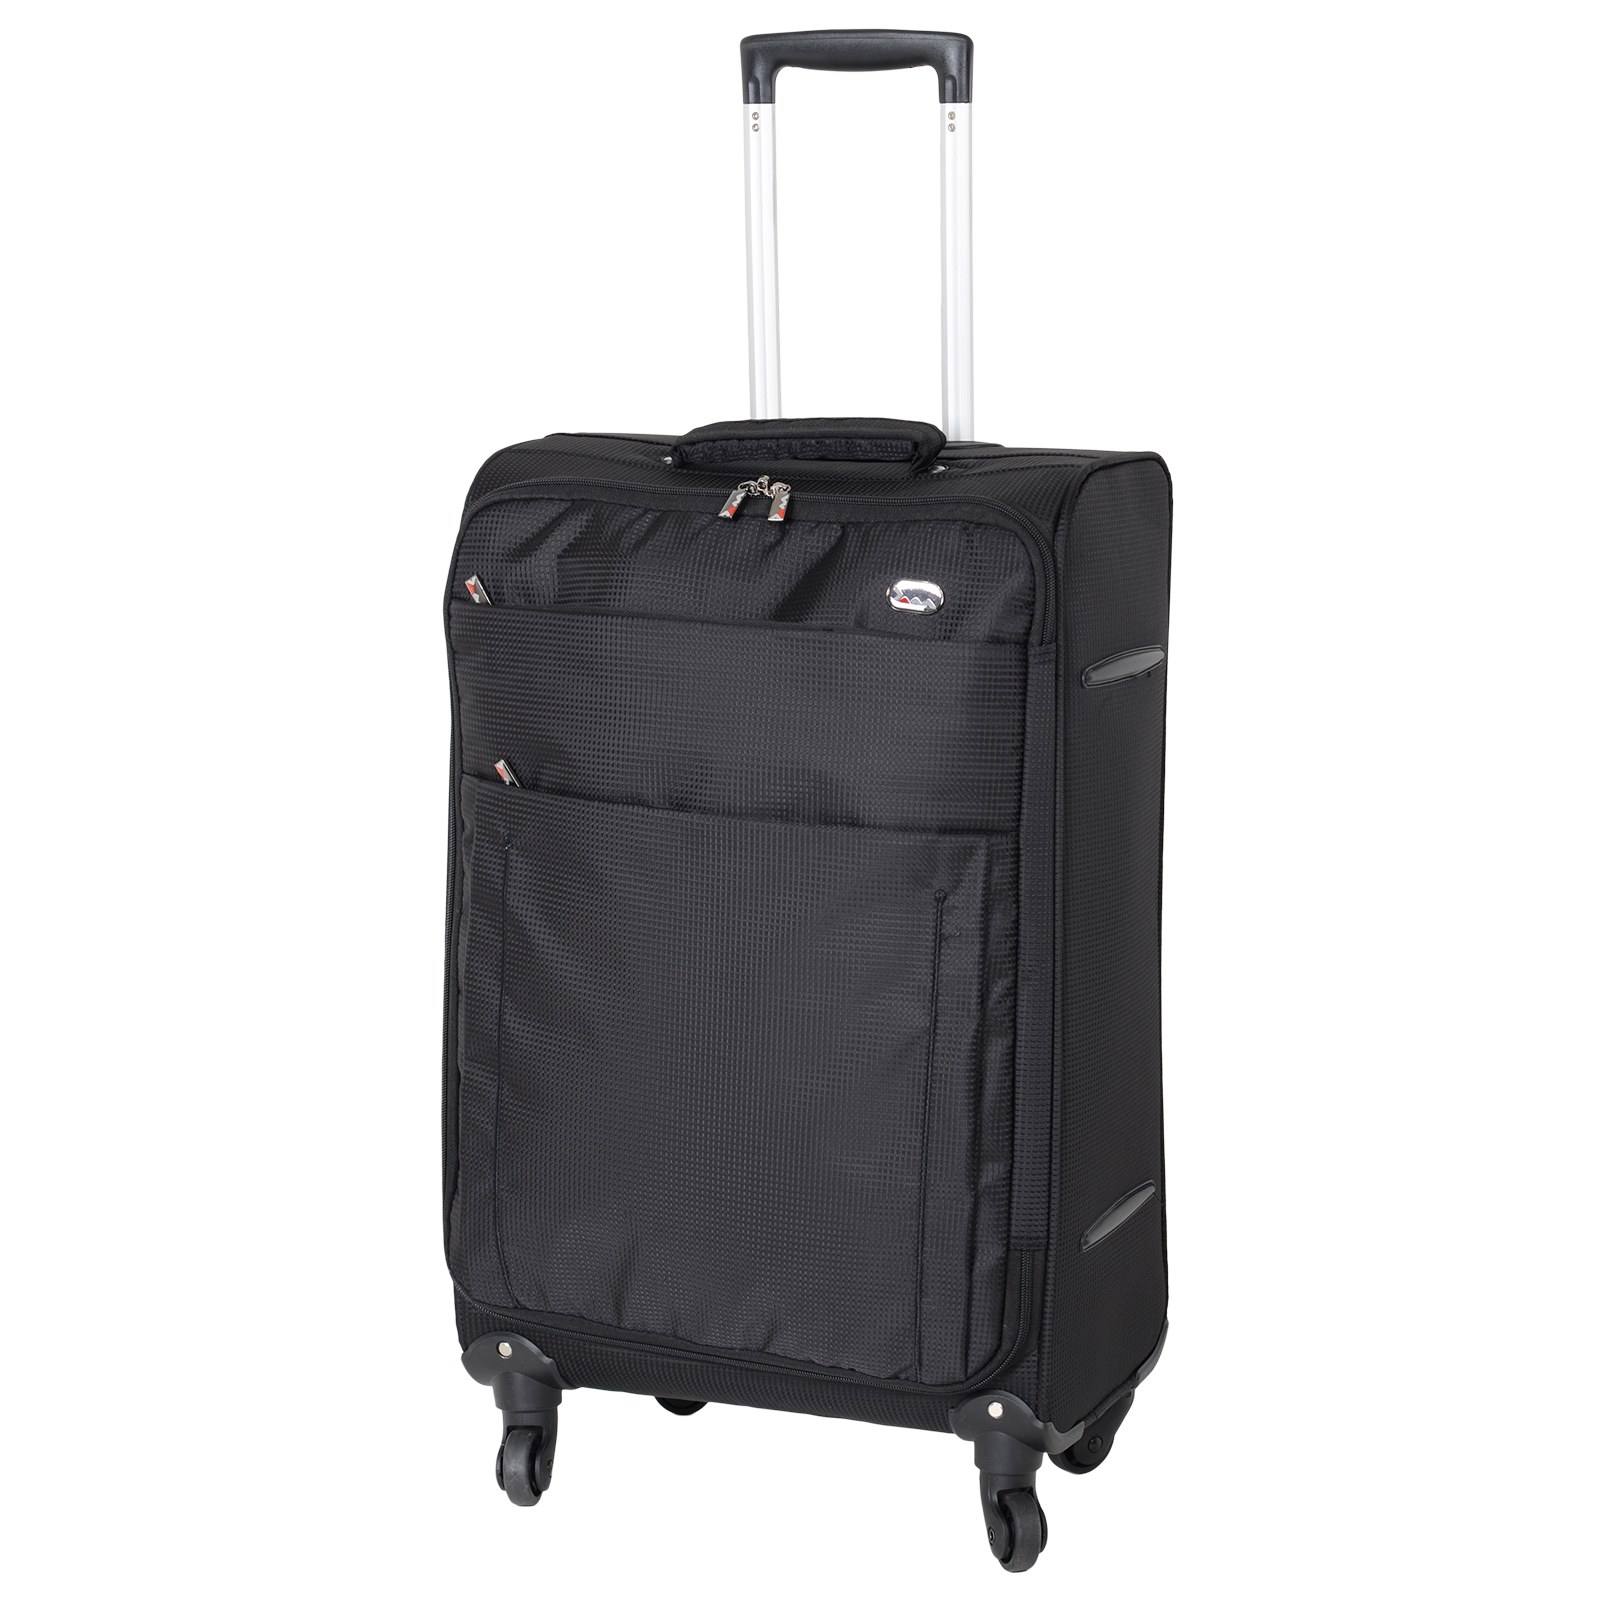 jam voyager 19 24 28 super light trolley case wheeled travel suitcase luggage ebay. Black Bedroom Furniture Sets. Home Design Ideas